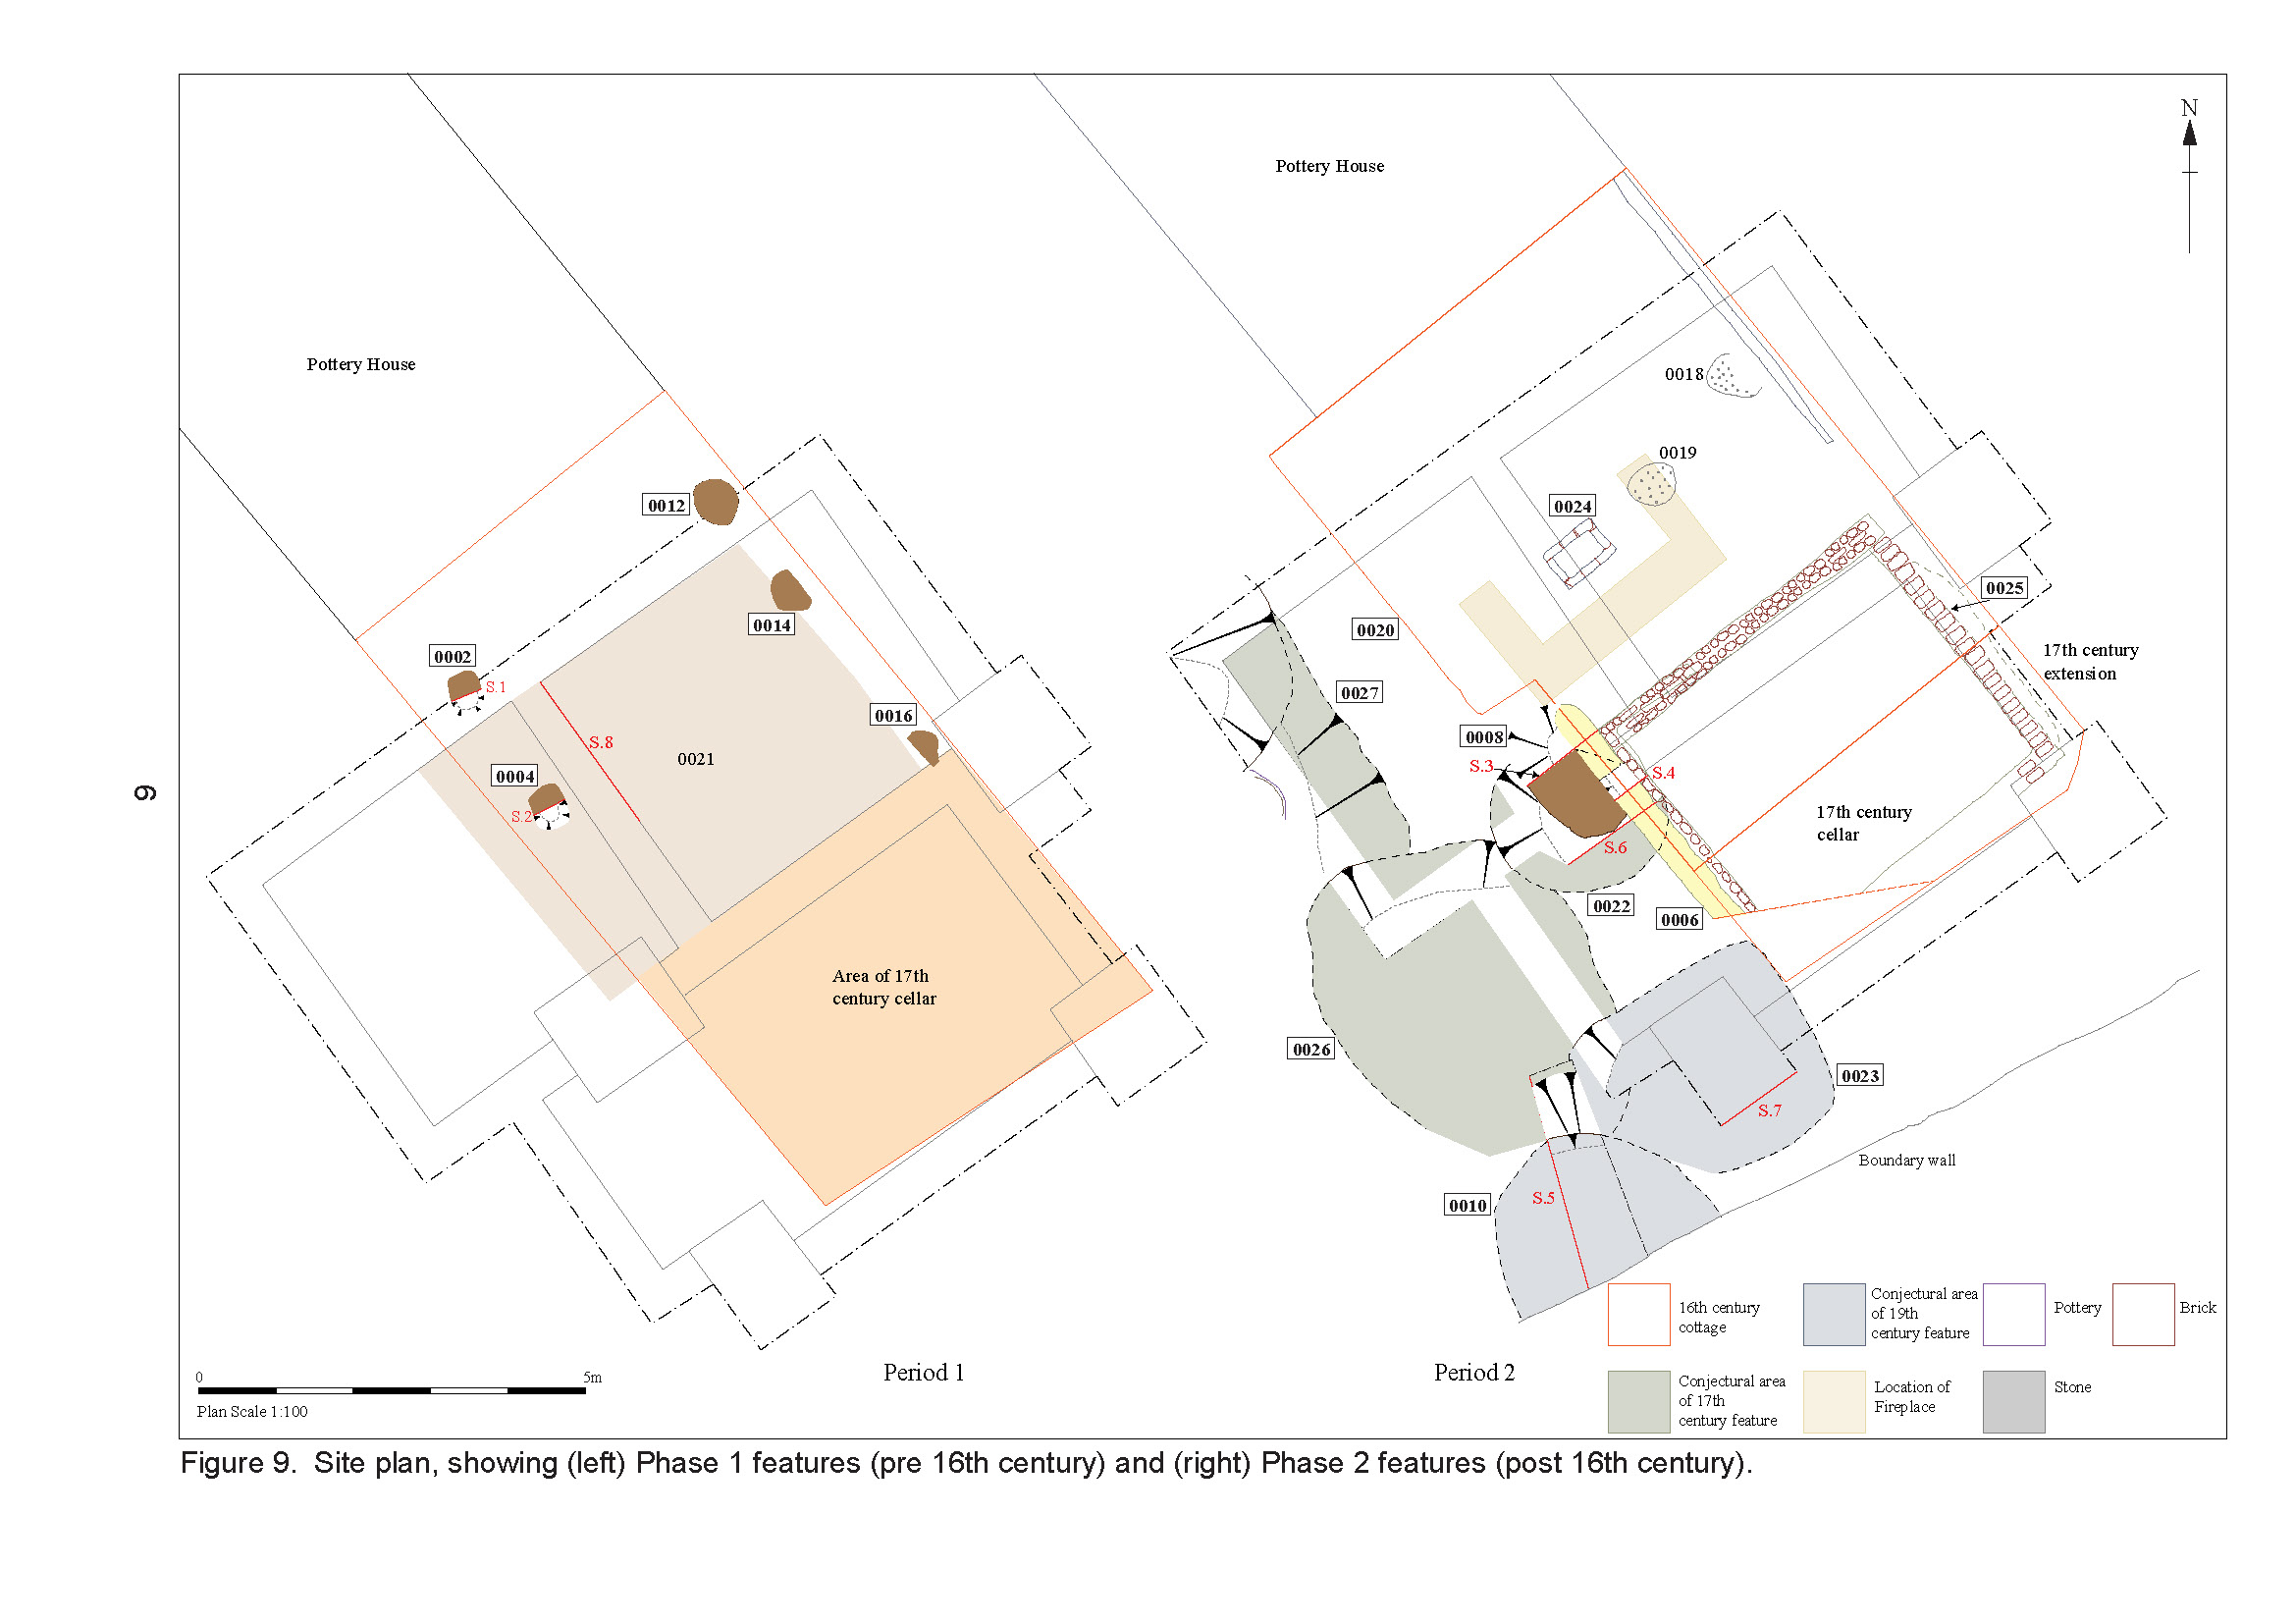 Report site plan from historic building recording at Wattisfield, Suffolk